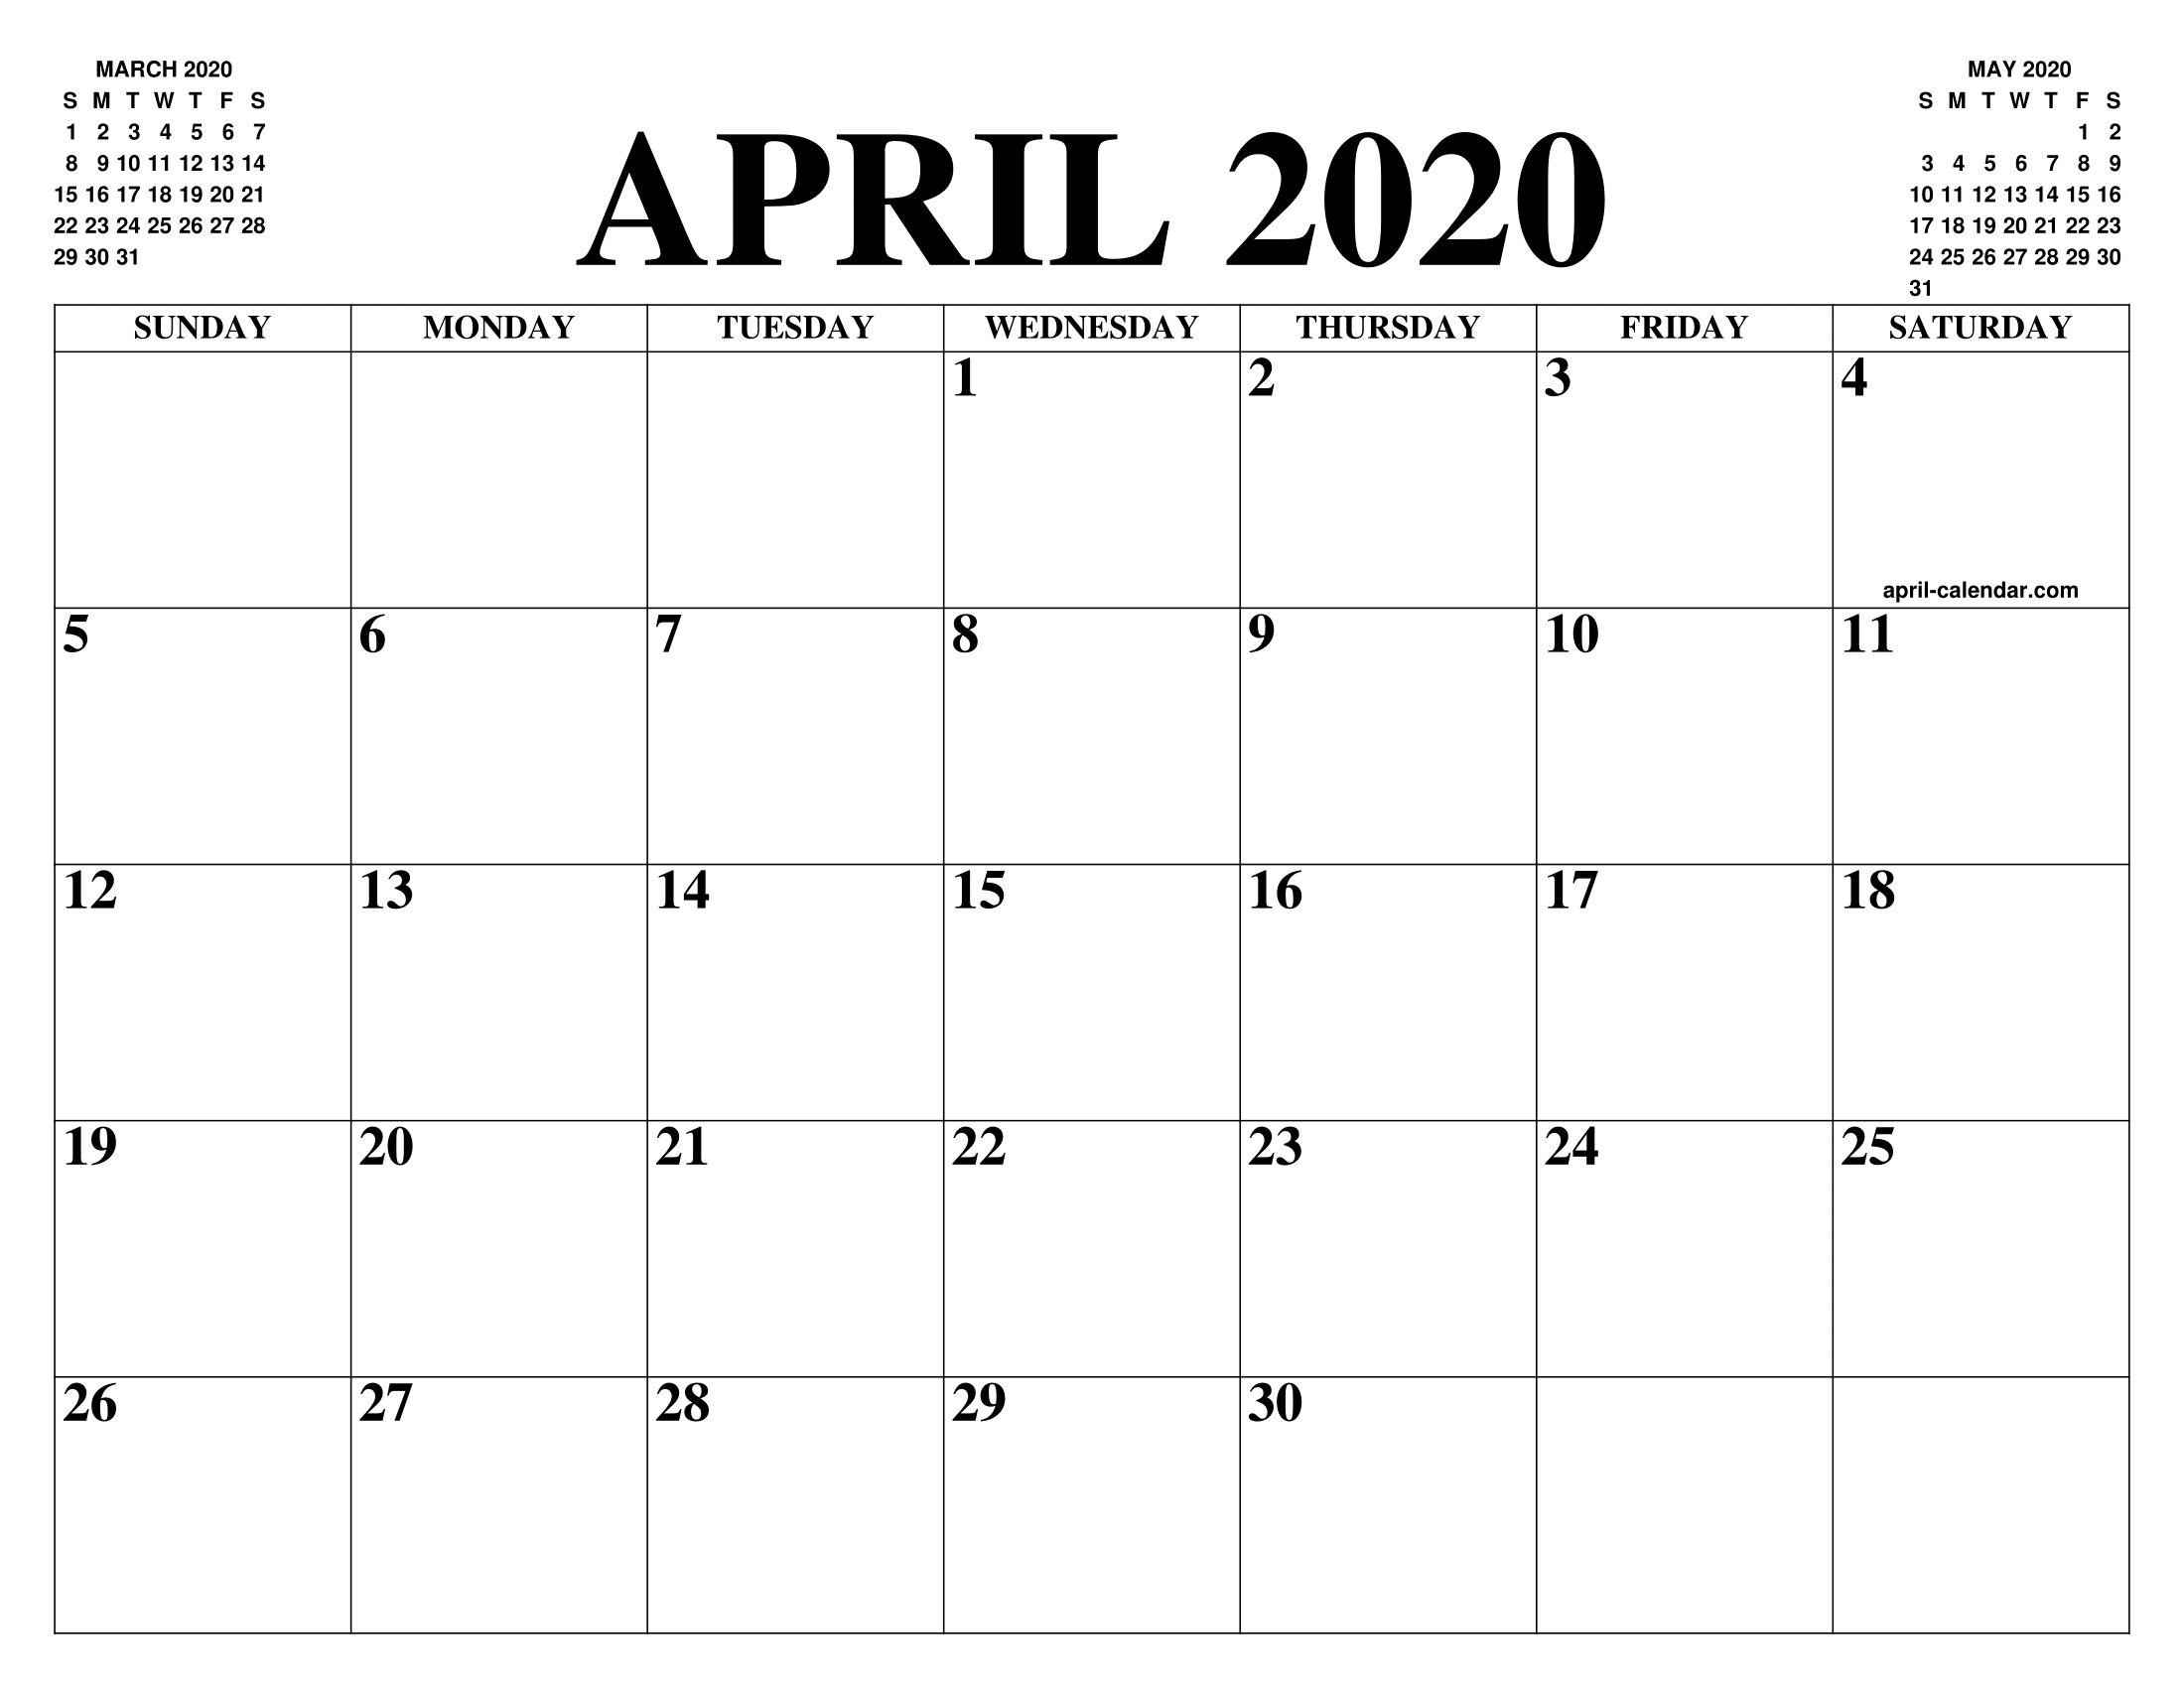 Daily Marketing Calendar Template For Excel, Free Download  Editable Baptist Calendar 2020 Printable